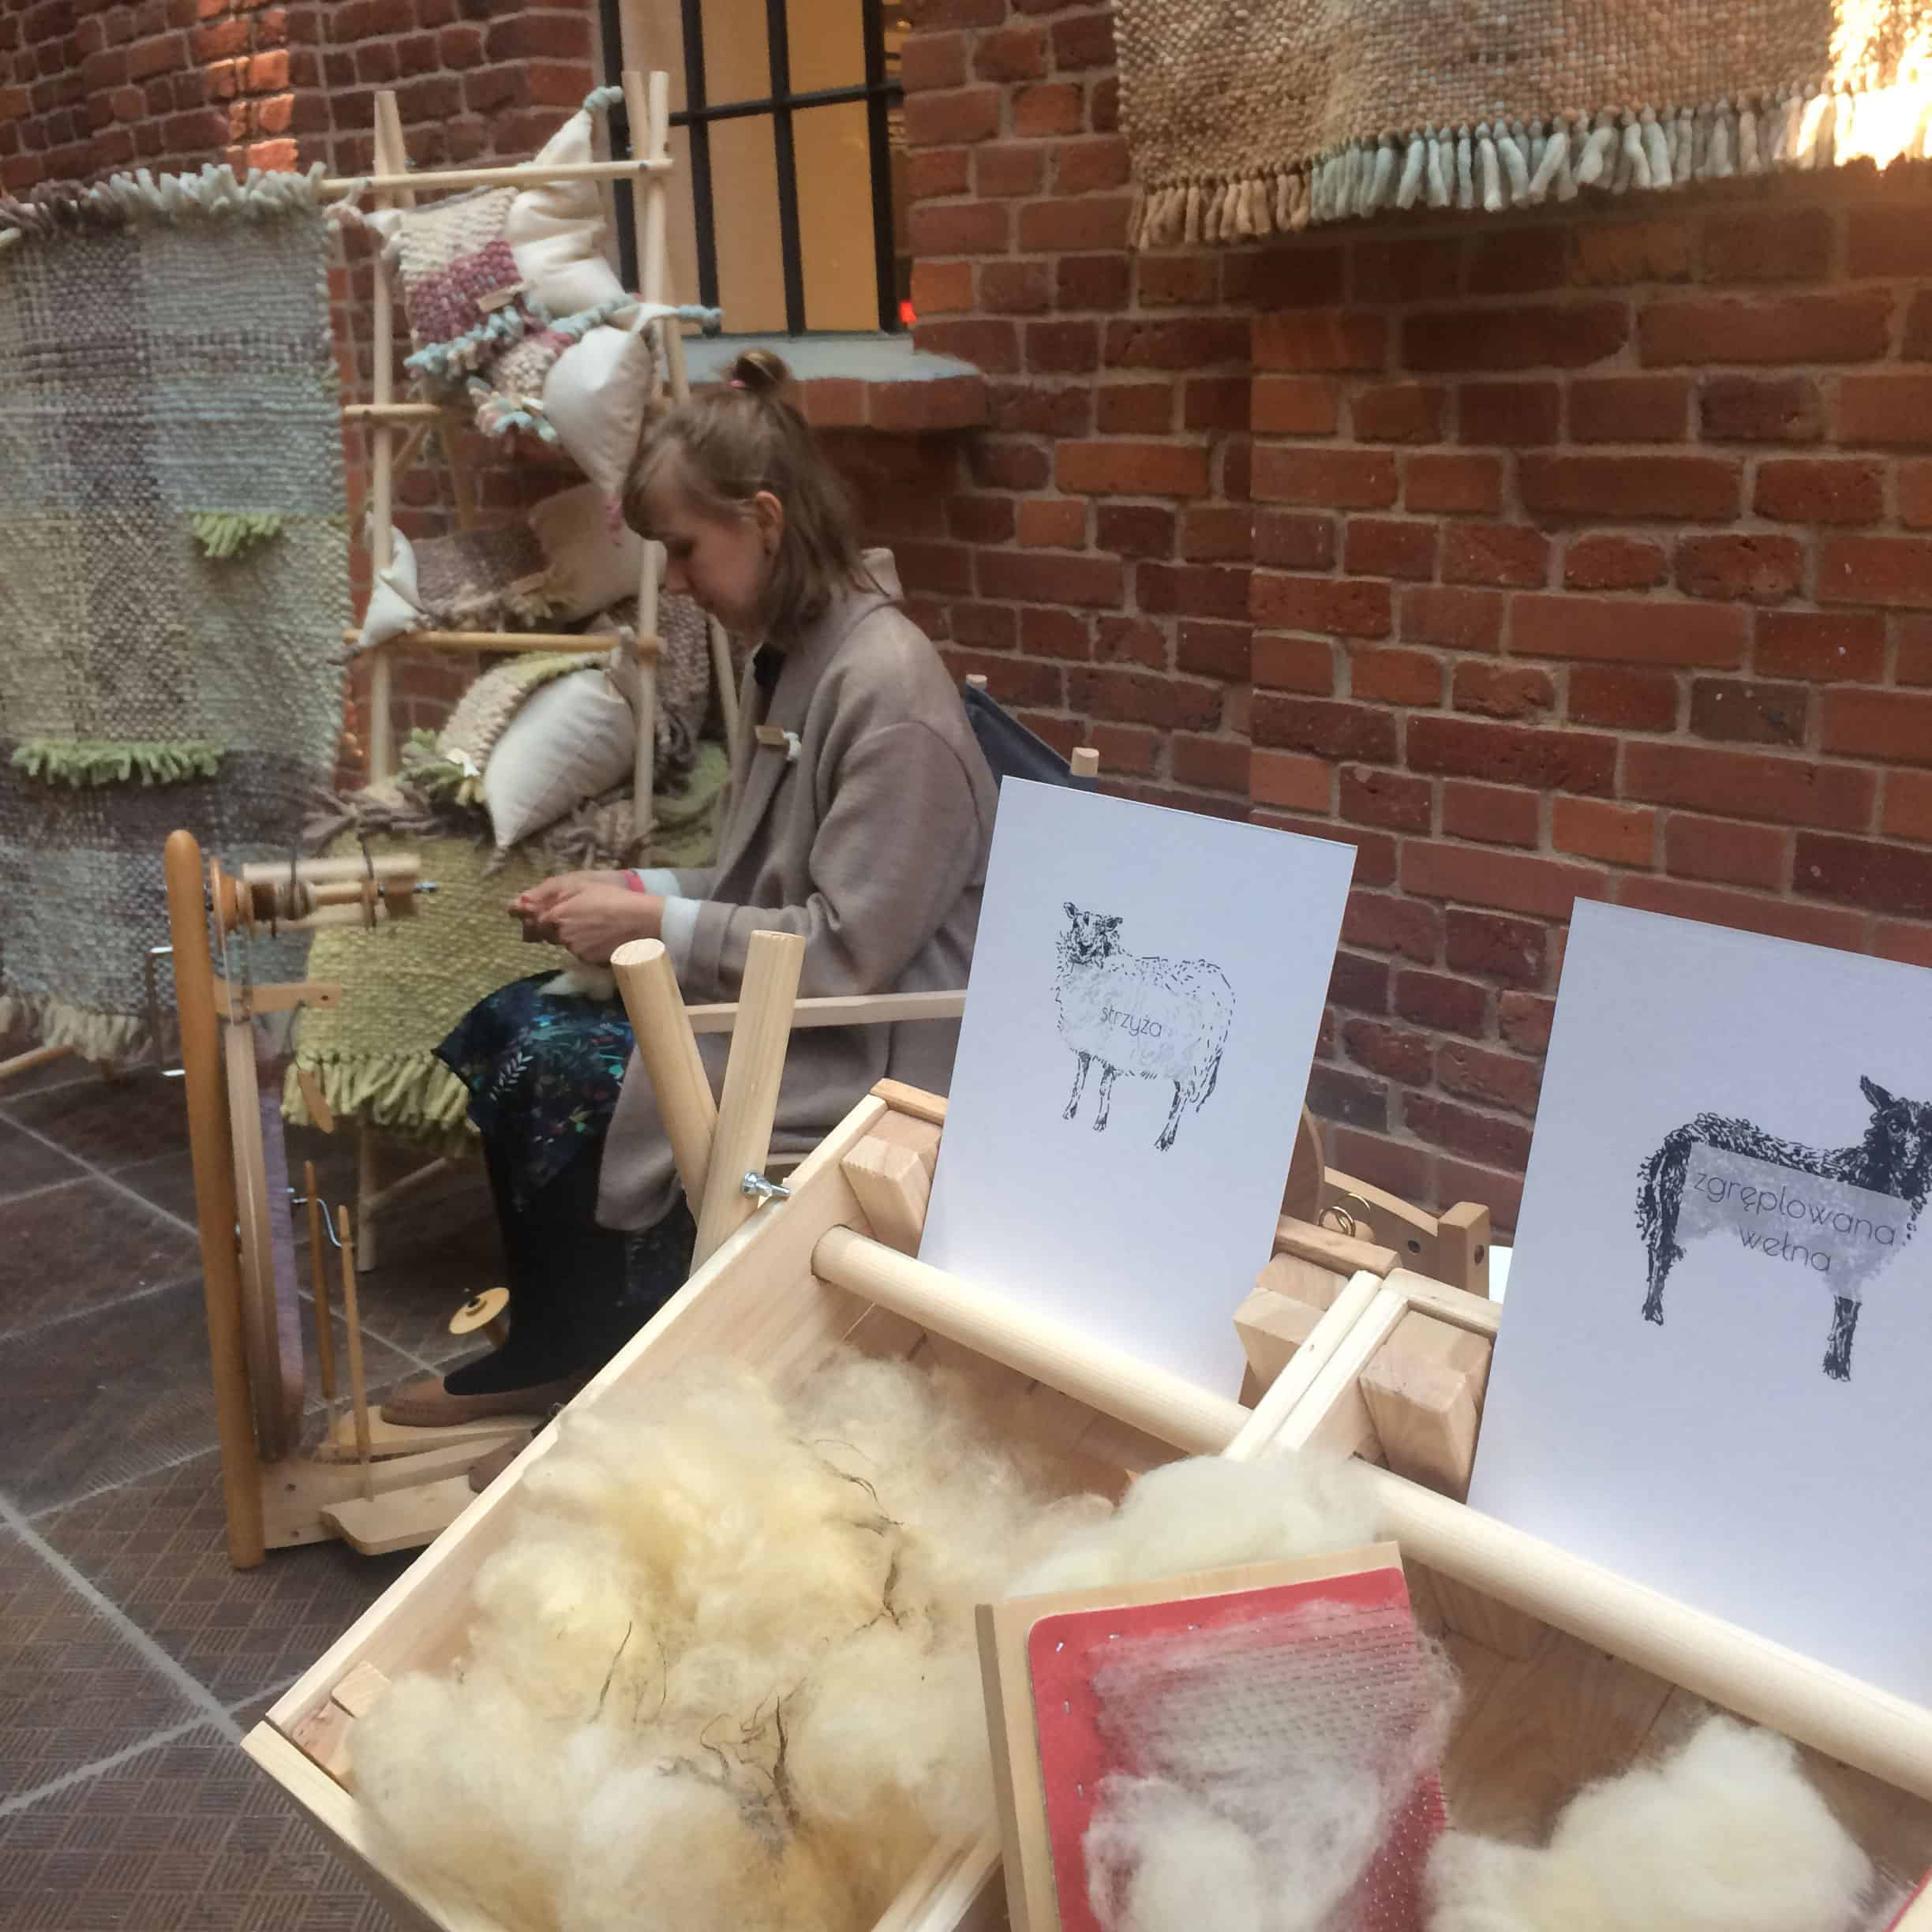 From fleece to thread - hand spinning wool performance